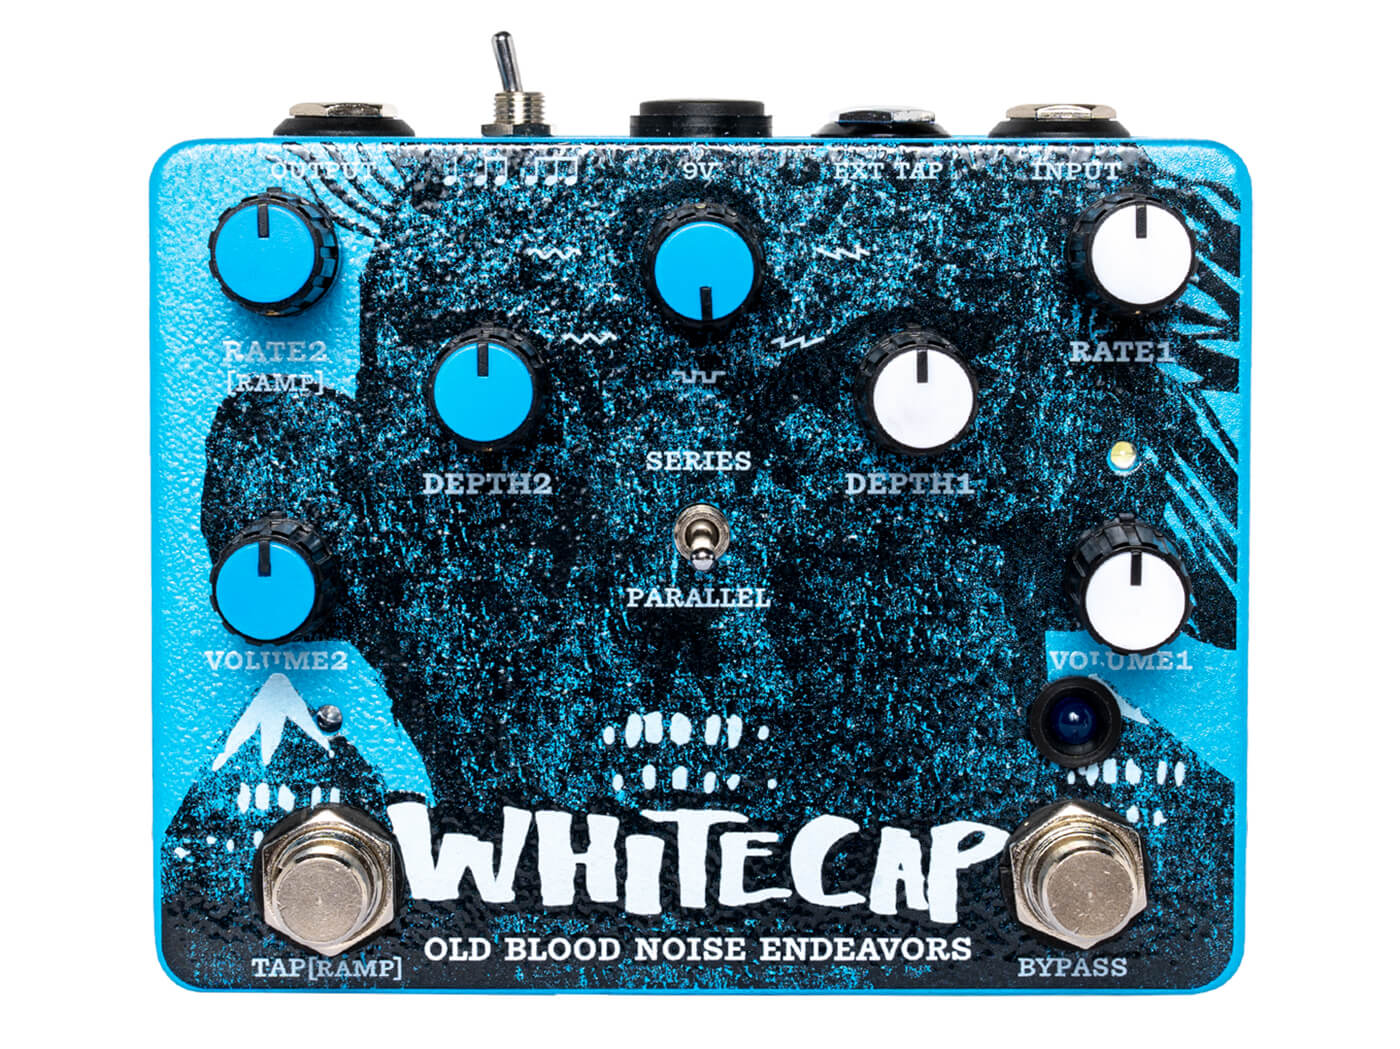 Old Blood Noise Endeavors Whitecap